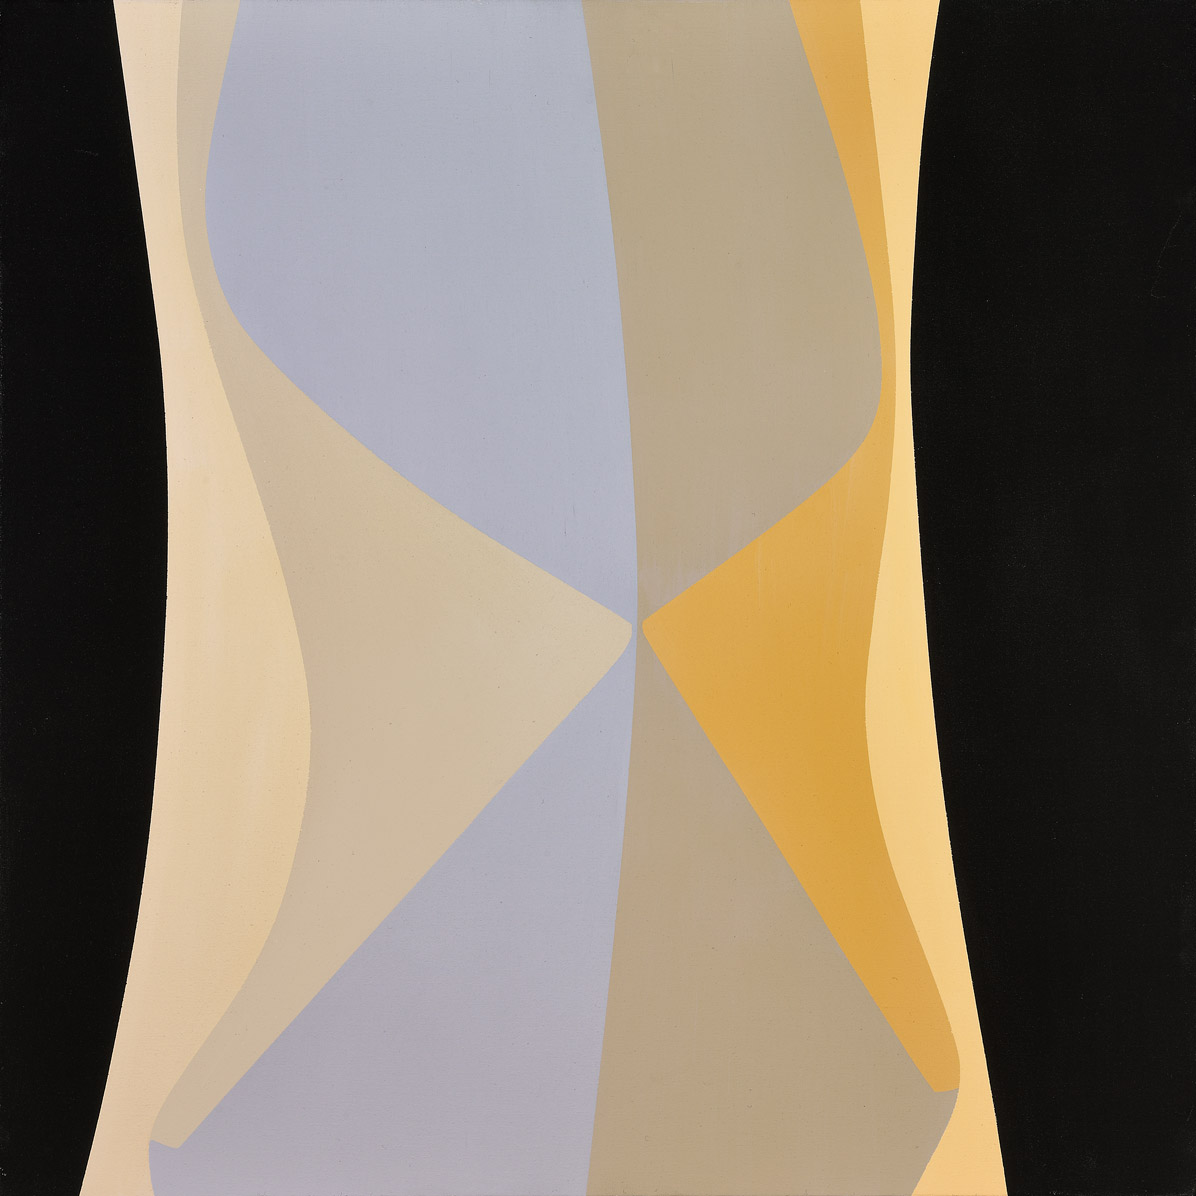 Untitled , 1968  acrylic on canvas 30 x 30 inches; 76.2 x 76.2 centimeters